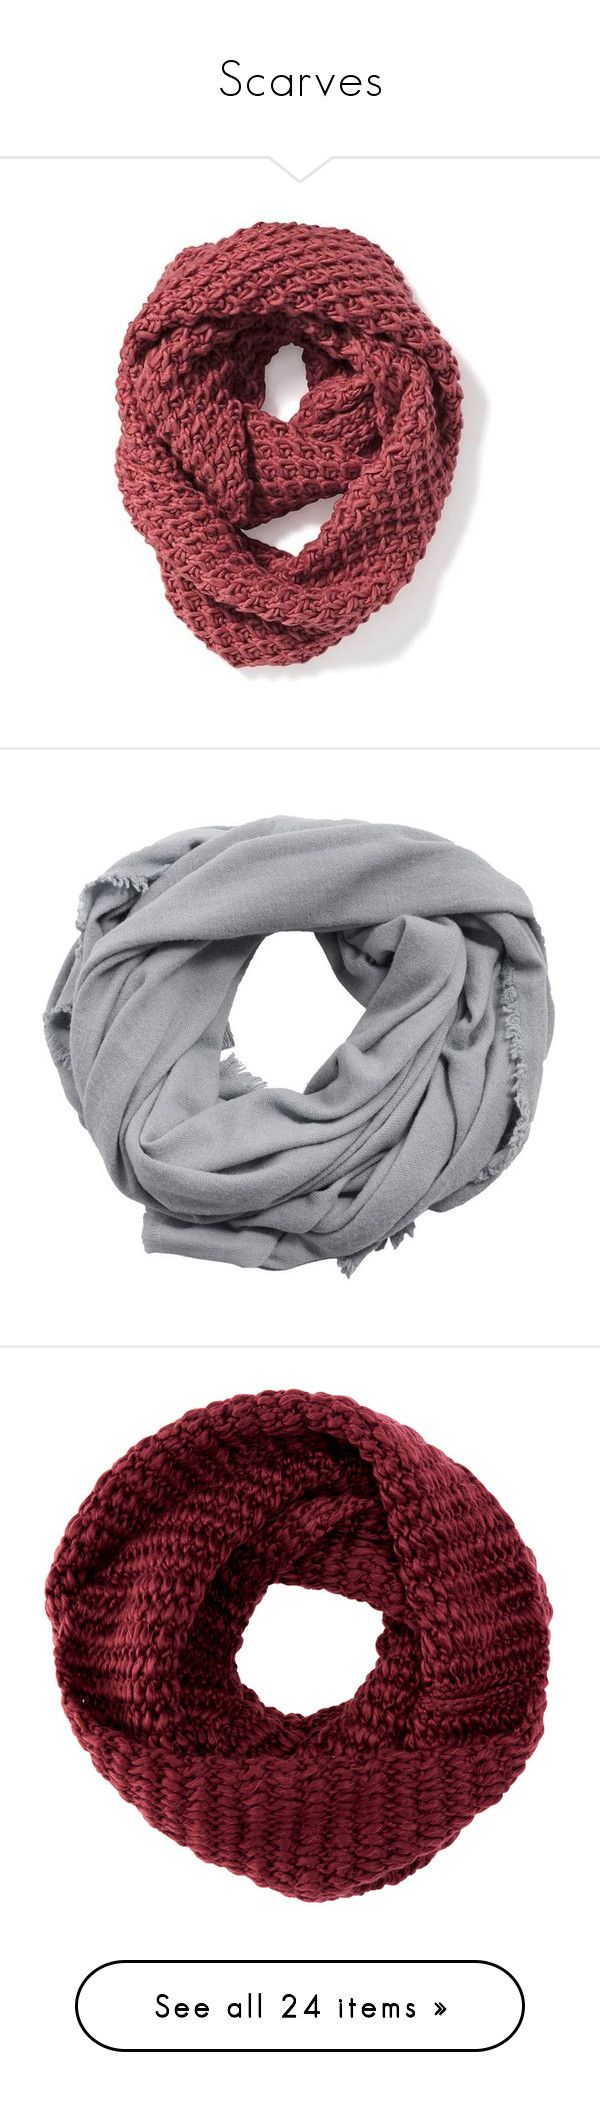 """""""Scarves"""" by ebeohp16 ❤ liked on Polyvore featuring accessories, scarves, knit infinity scarf, loop scarves, infinity scarf, old navy scarves, honey comb, burgundy, infinity loop scarves and hand crochet infinity scarf"""